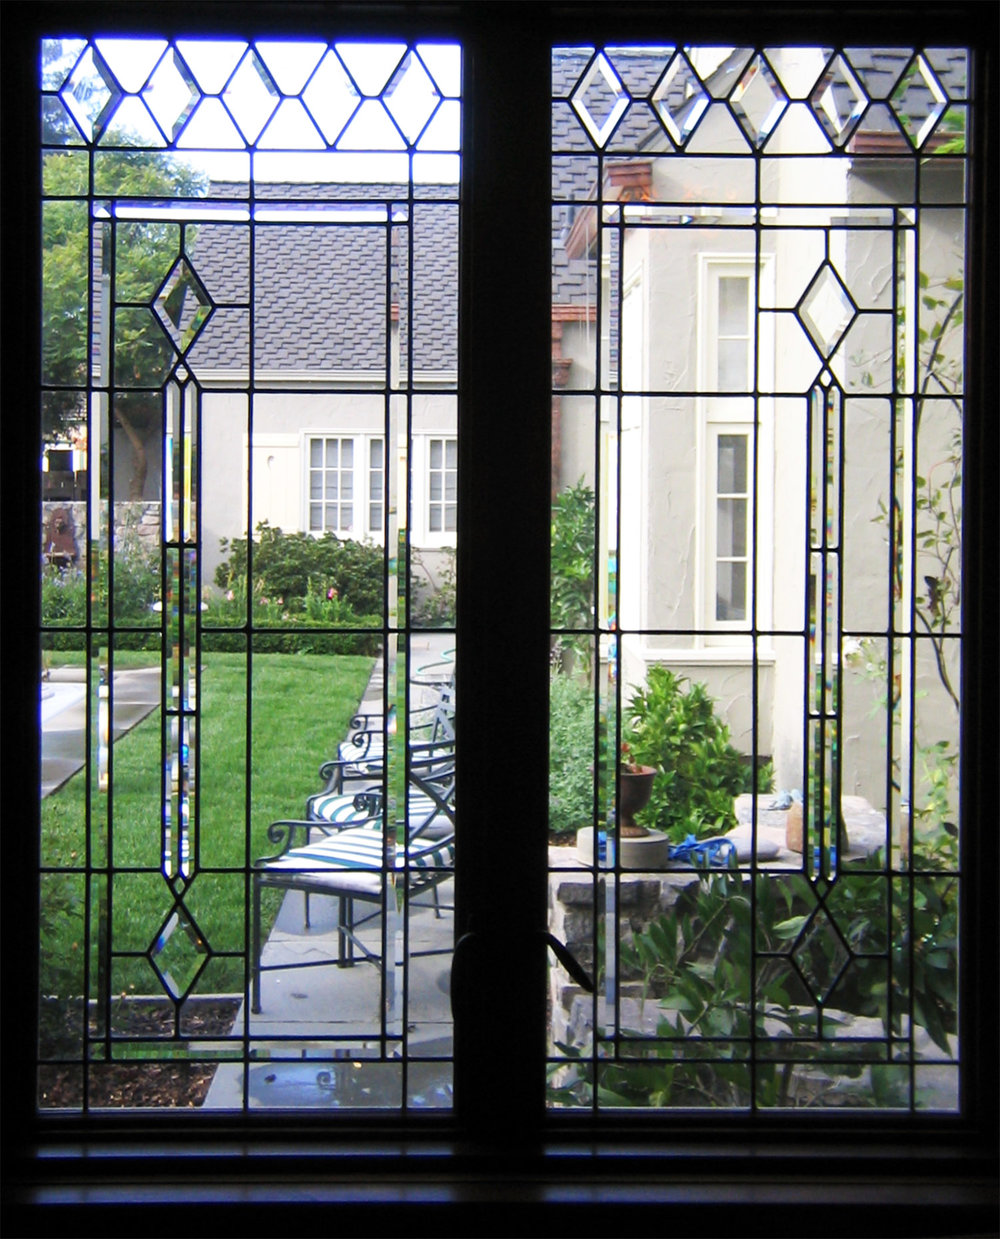 pencil bevel diamond beveled leaded glass stained glass window palo alto atherton california san francisco2.jpg